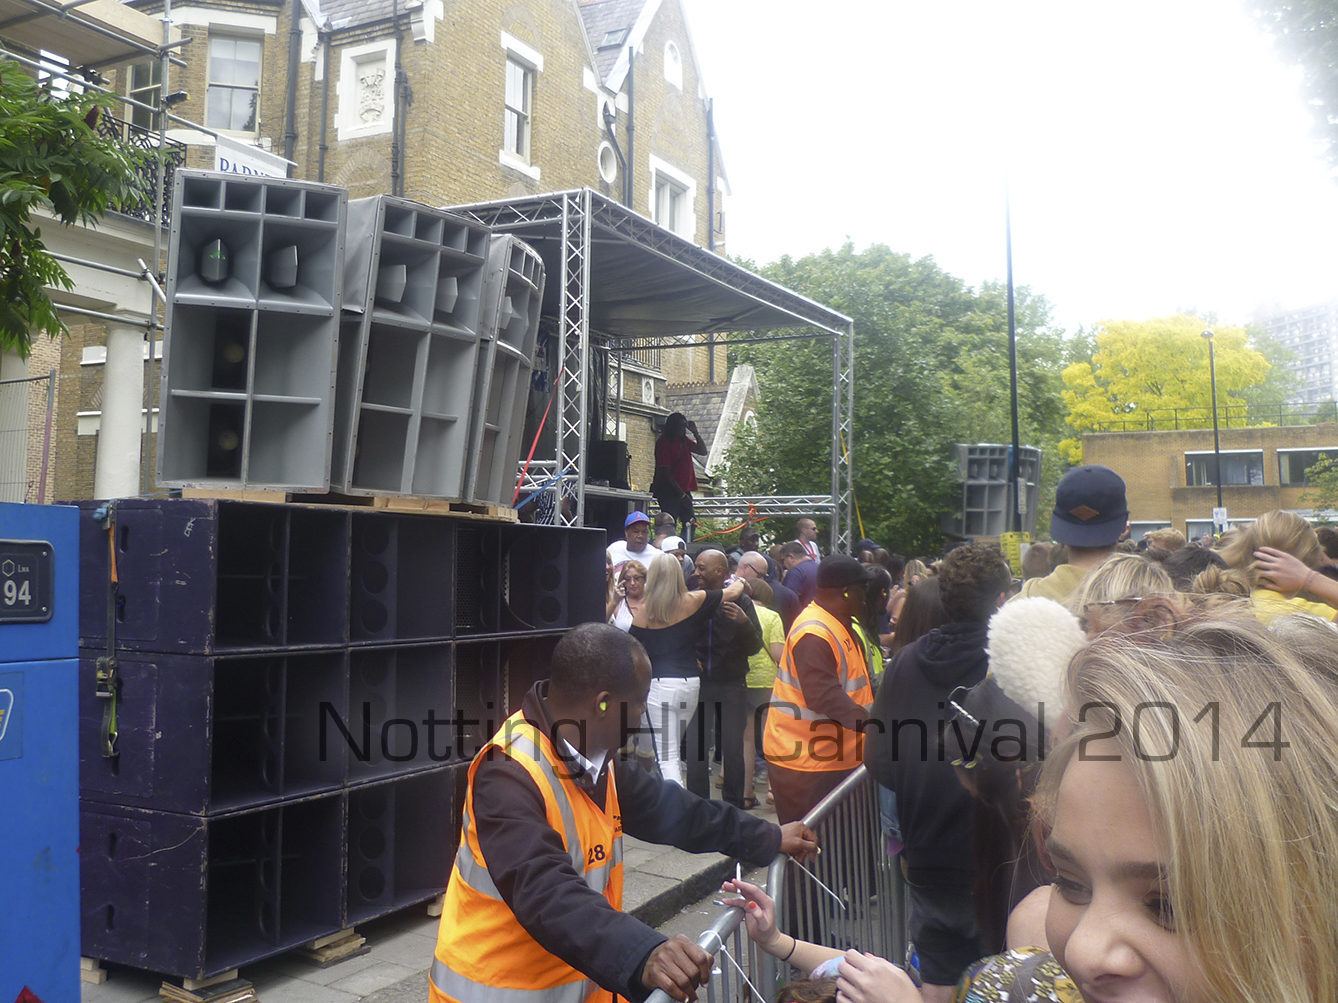 Notting-Hill-Carnival-2014-Funktion-One-Street-Sound-System-1